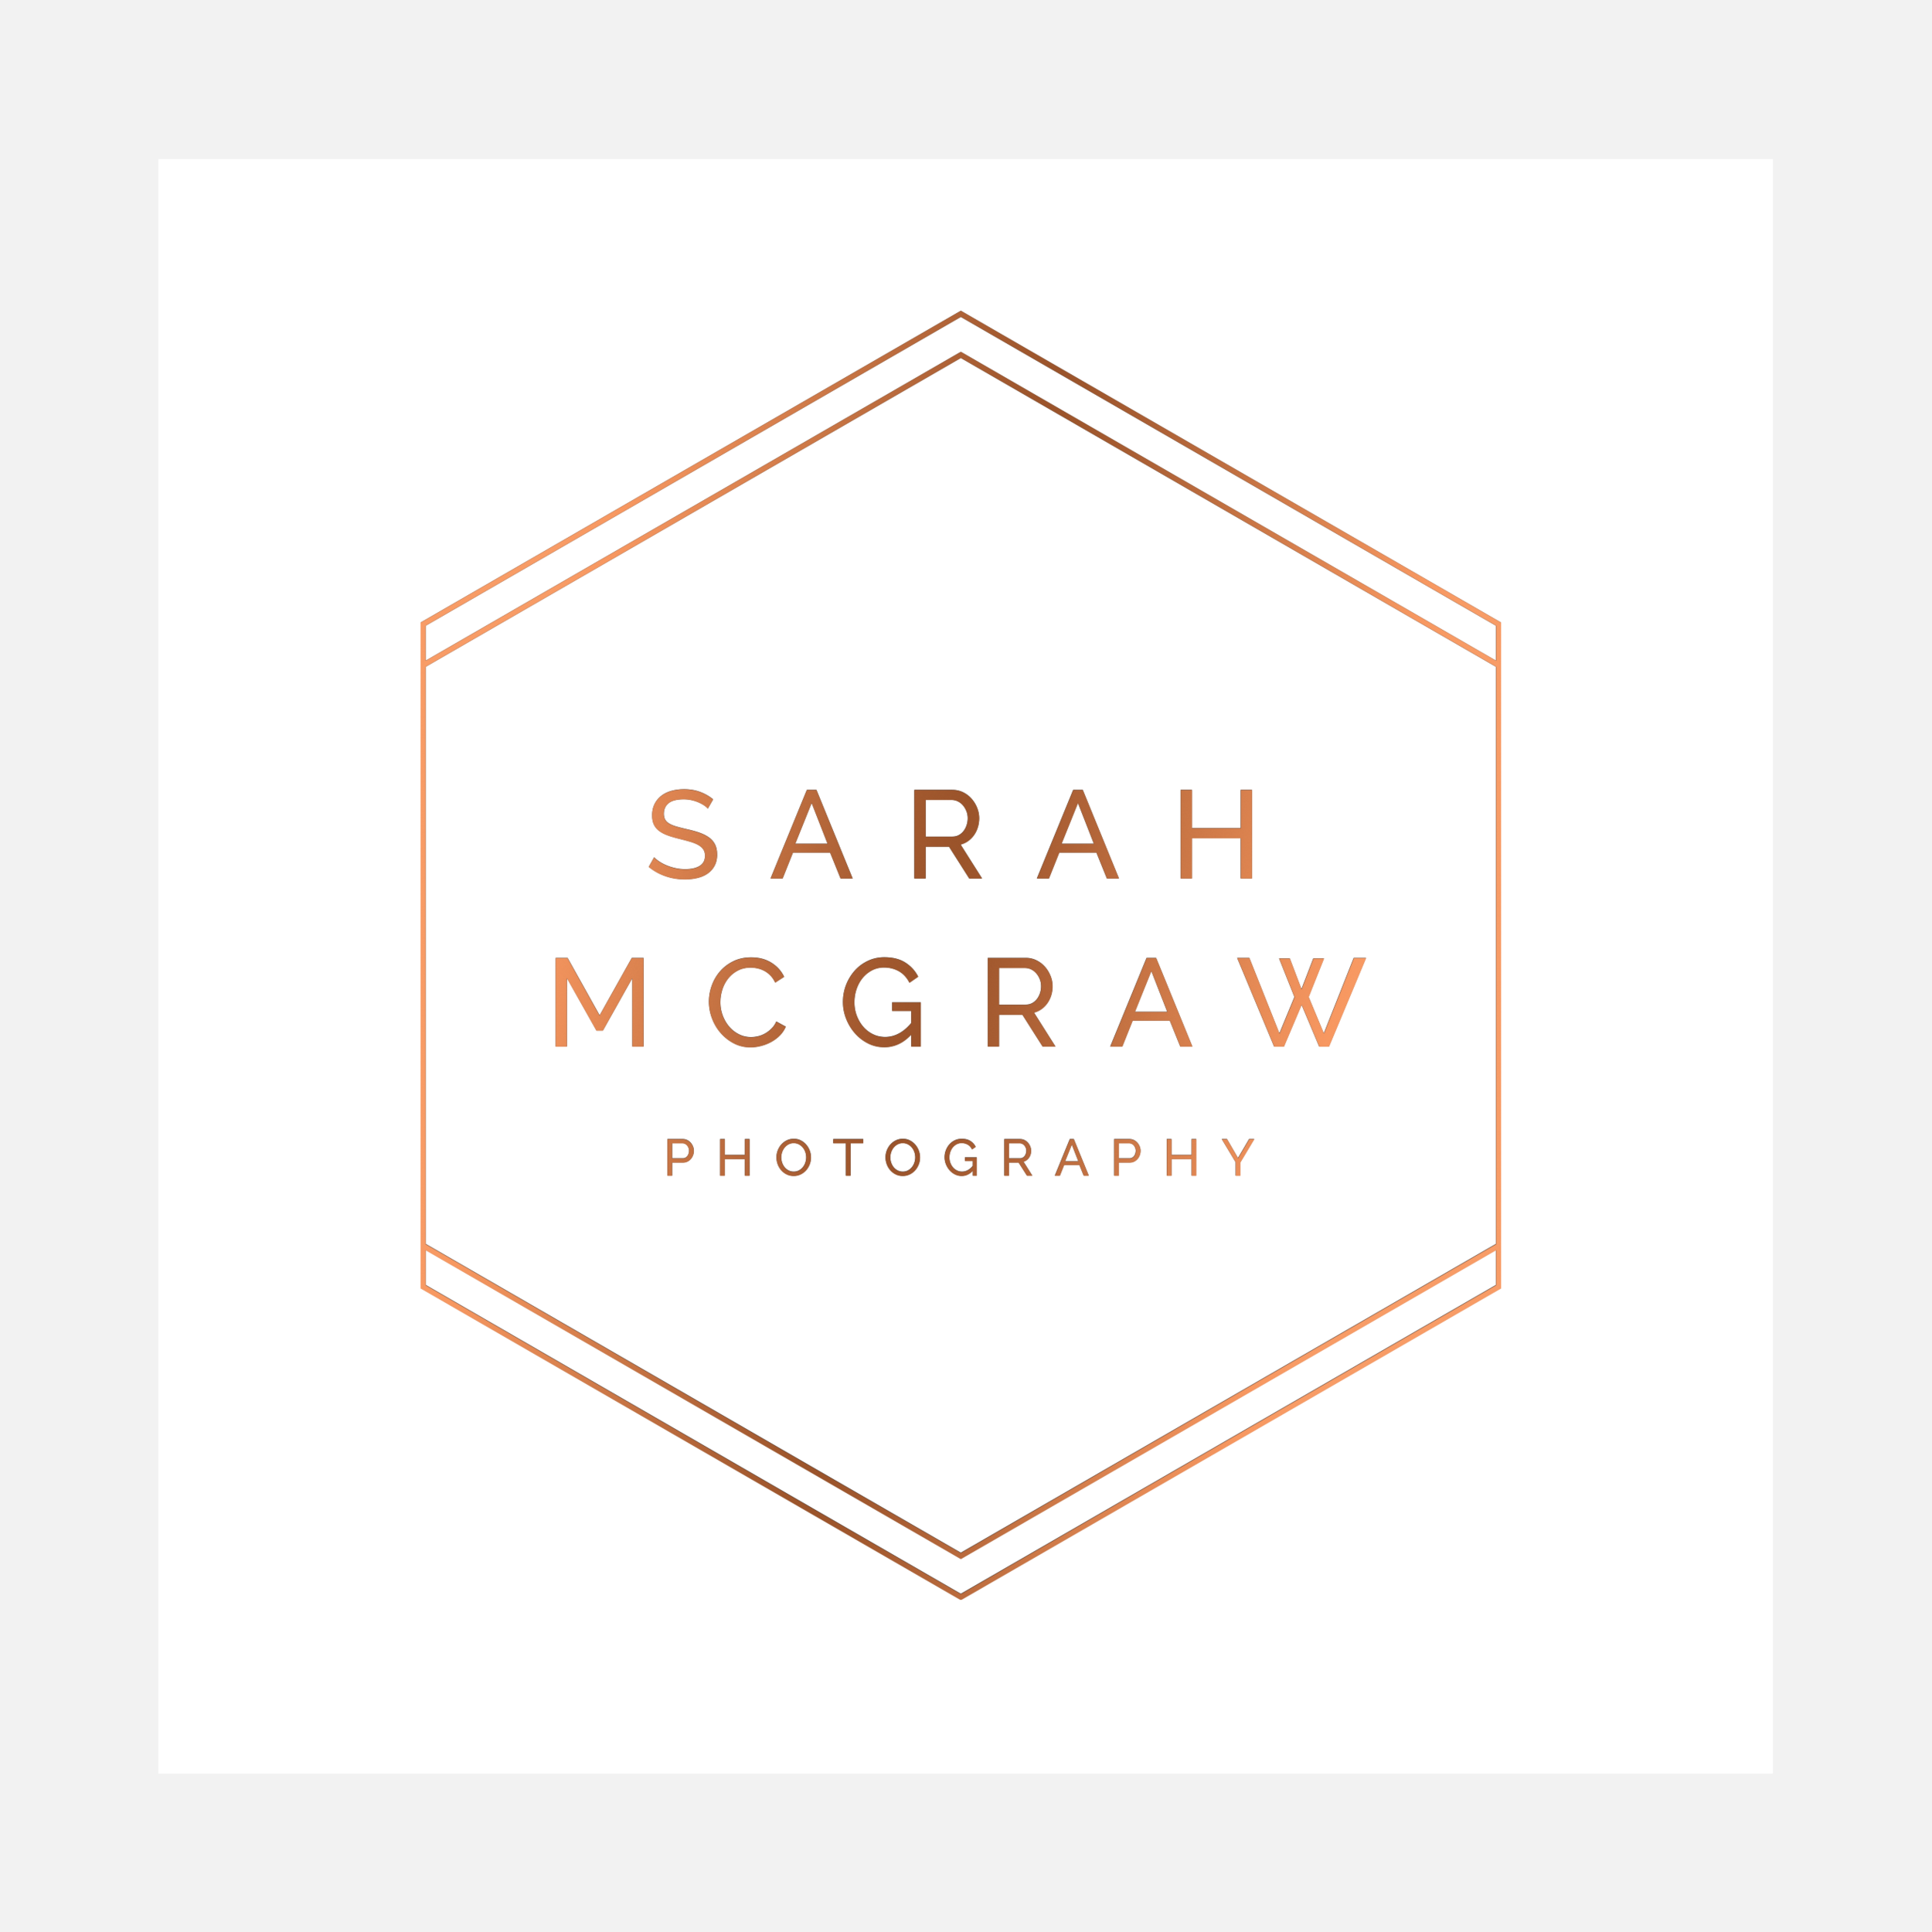 Sarah McGraw Photography